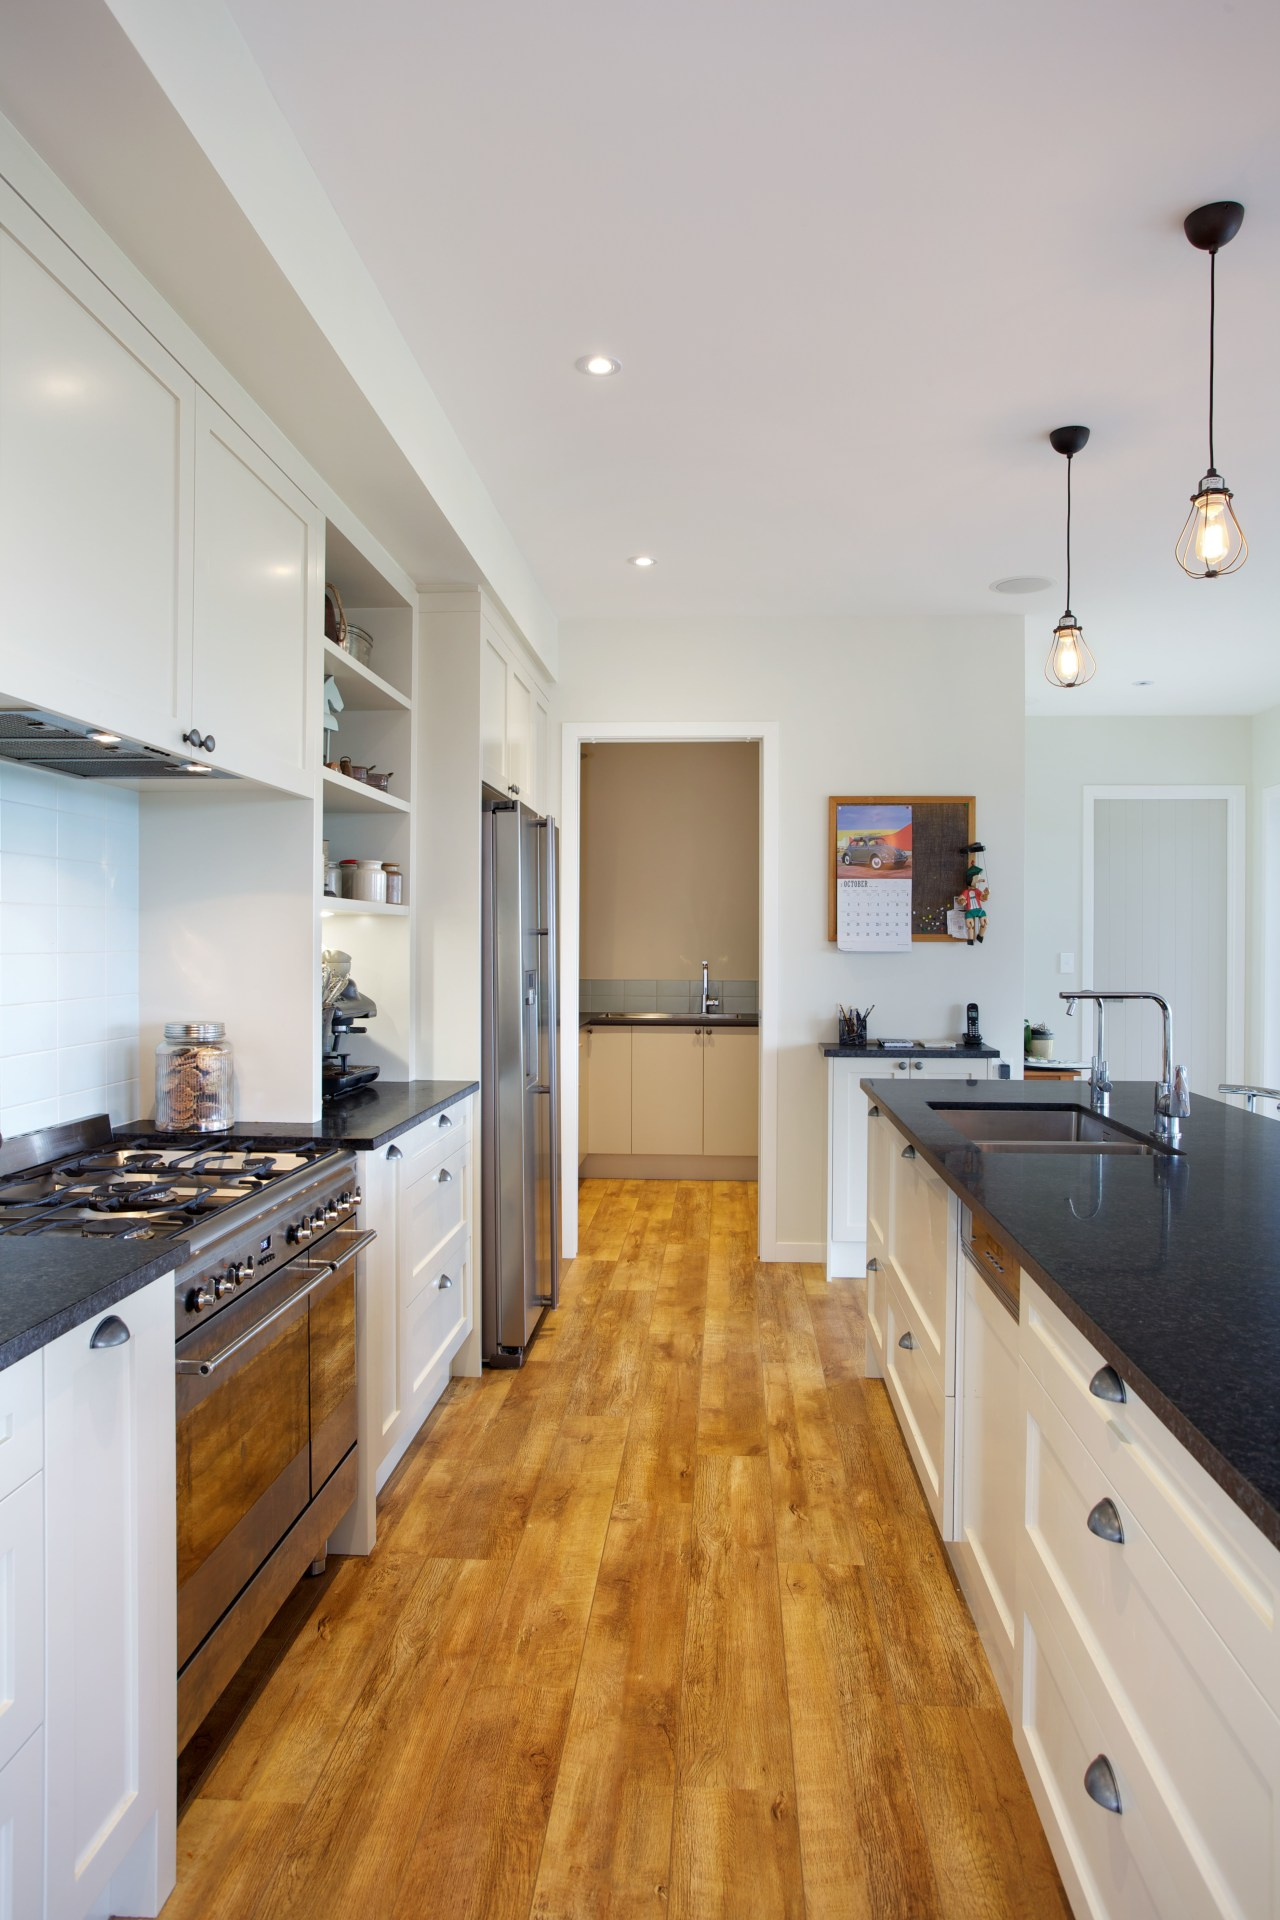 This galley kitchen features Shaker-style cabinets and honed cabinetry, countertop, cuisine classique, floor, flooring, hardwood, interior design, kitchen, laminate flooring, real estate, room, wood, wood flooring, gray